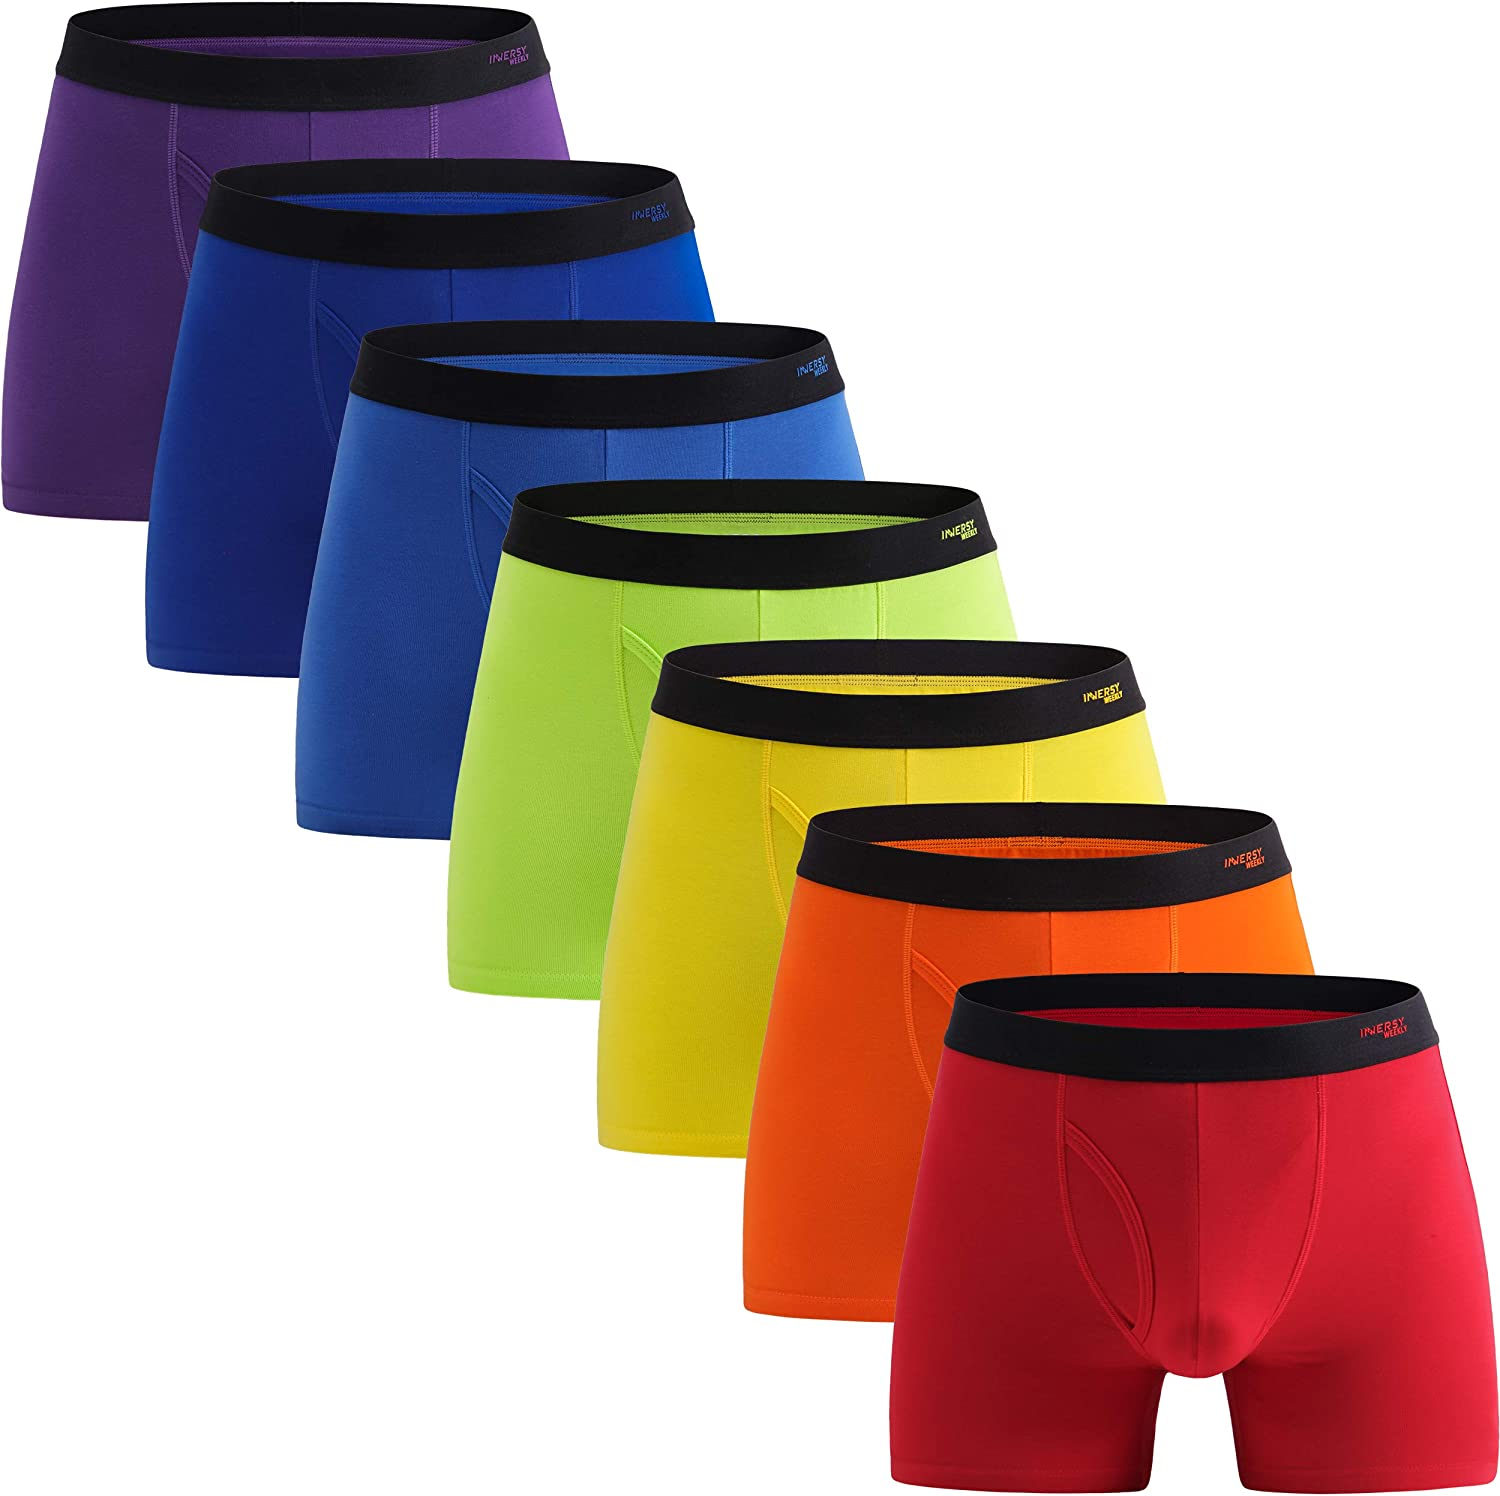 INNERSY Men's Cotton Boxer Briefs Underwear Regular Long with Pouch 7 Pack